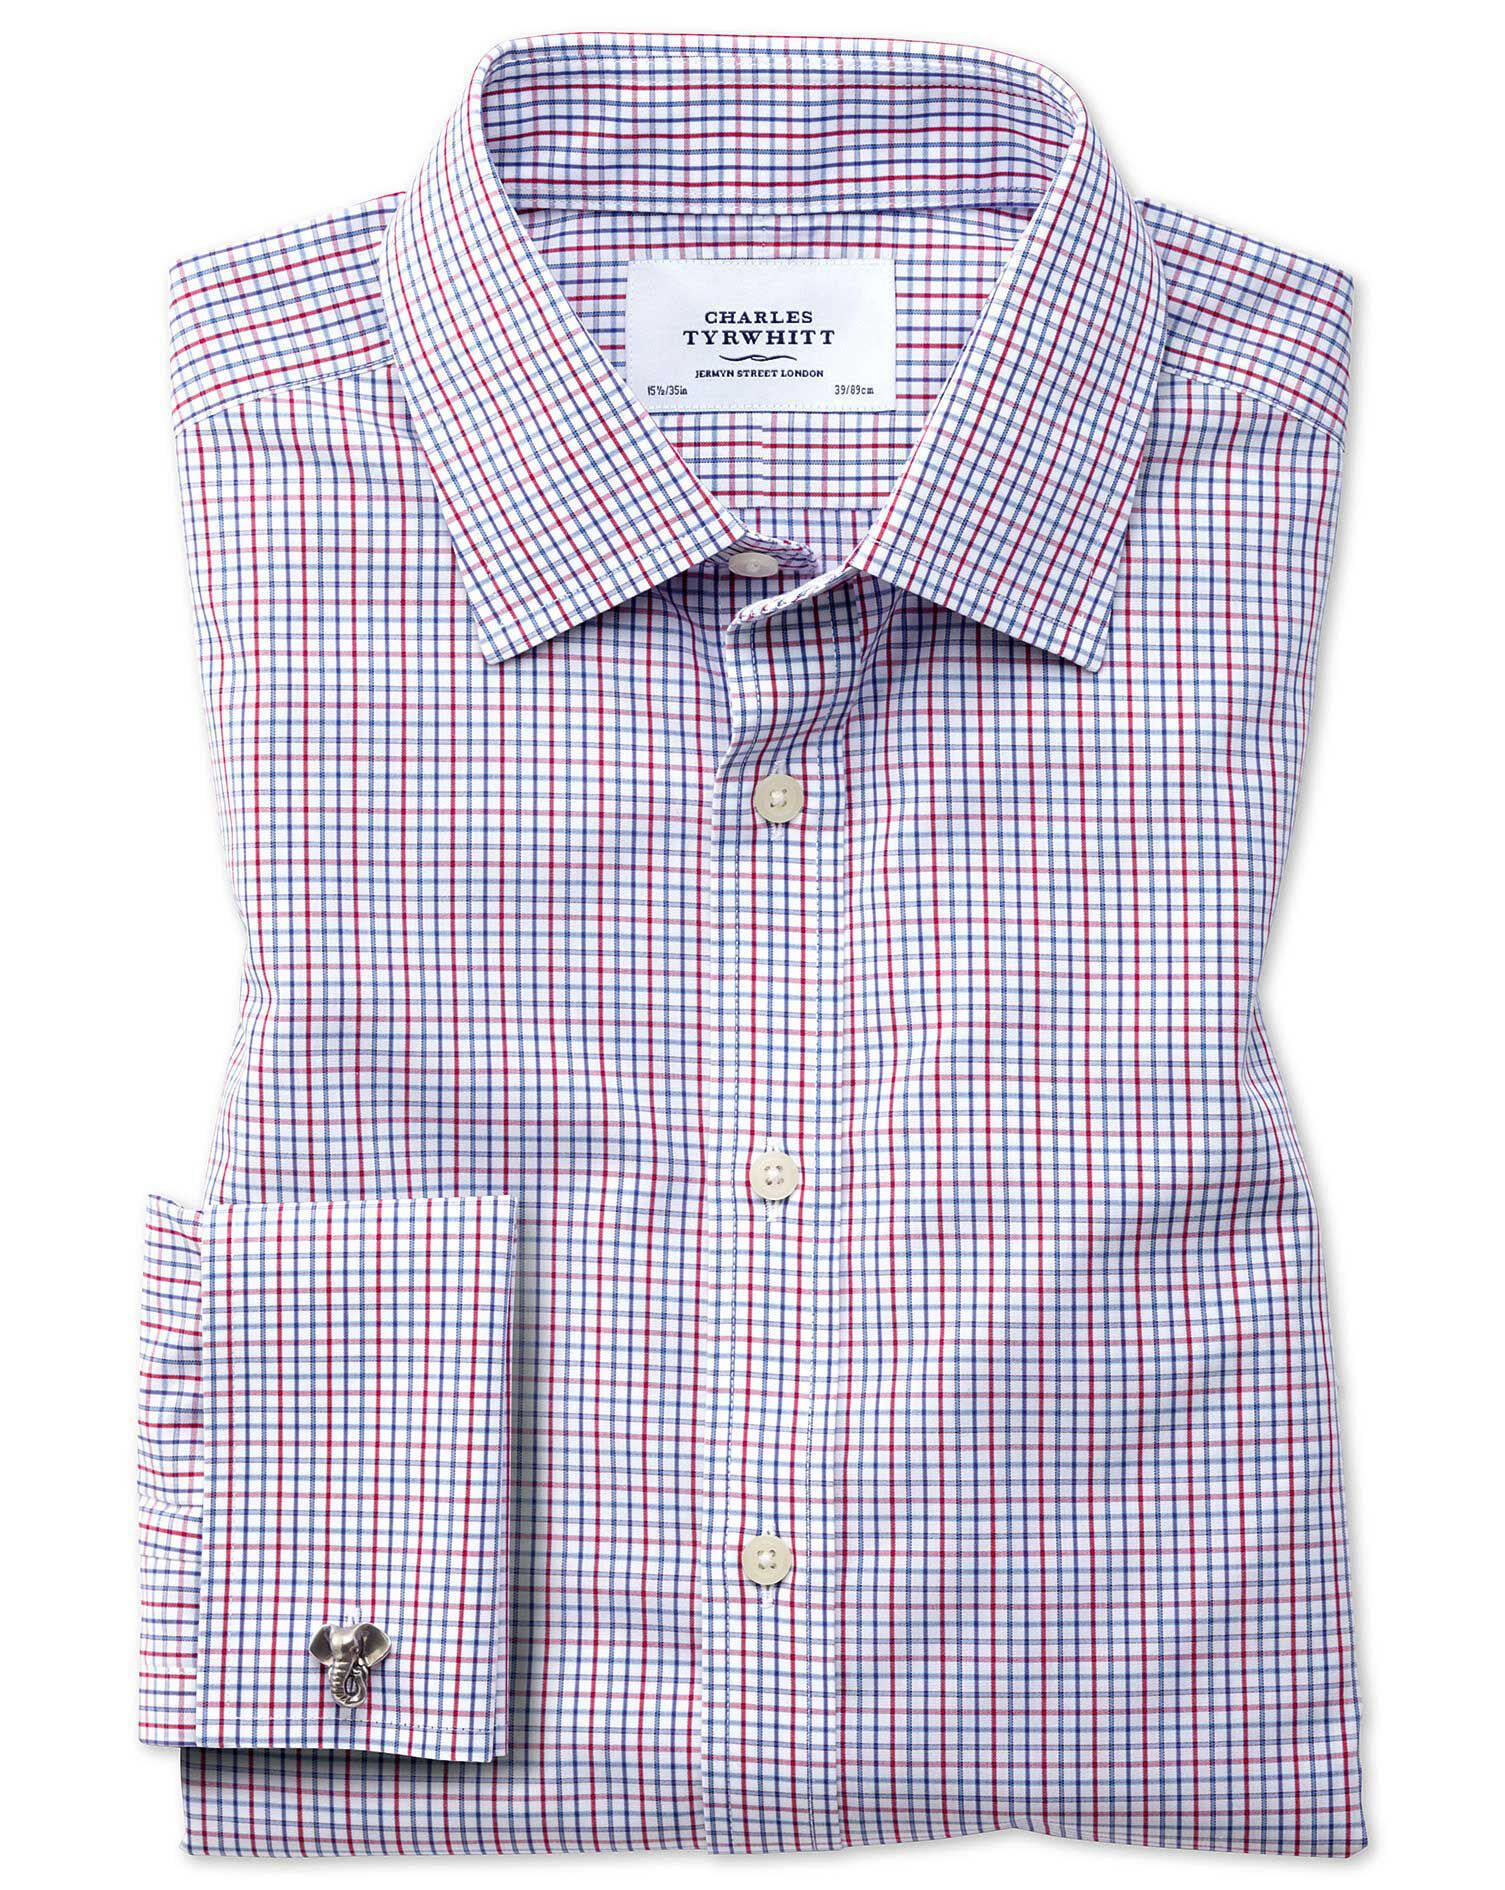 Classic Fit Non-Iron Multi Grid Check Cotton Formal Shirt Double Cuff Size 16/36 by Charles Tyrwhitt